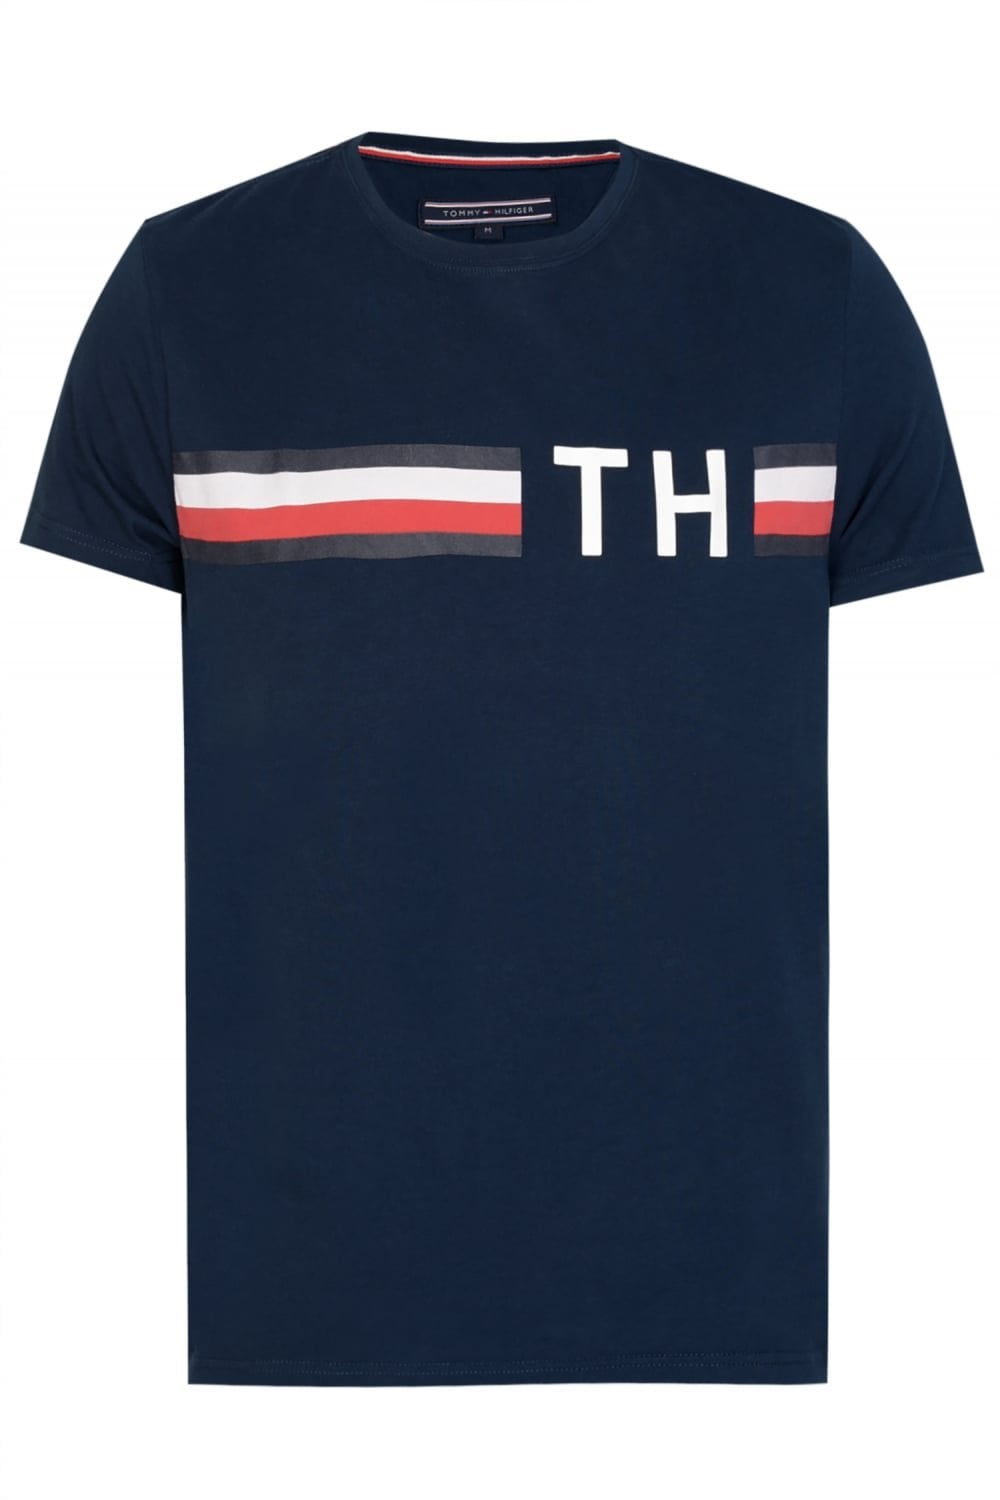 e19296f876d6 TOMMY HILFIGER LOGO GRAPHIC T-SHIRT - Uncategorised from Circle ...